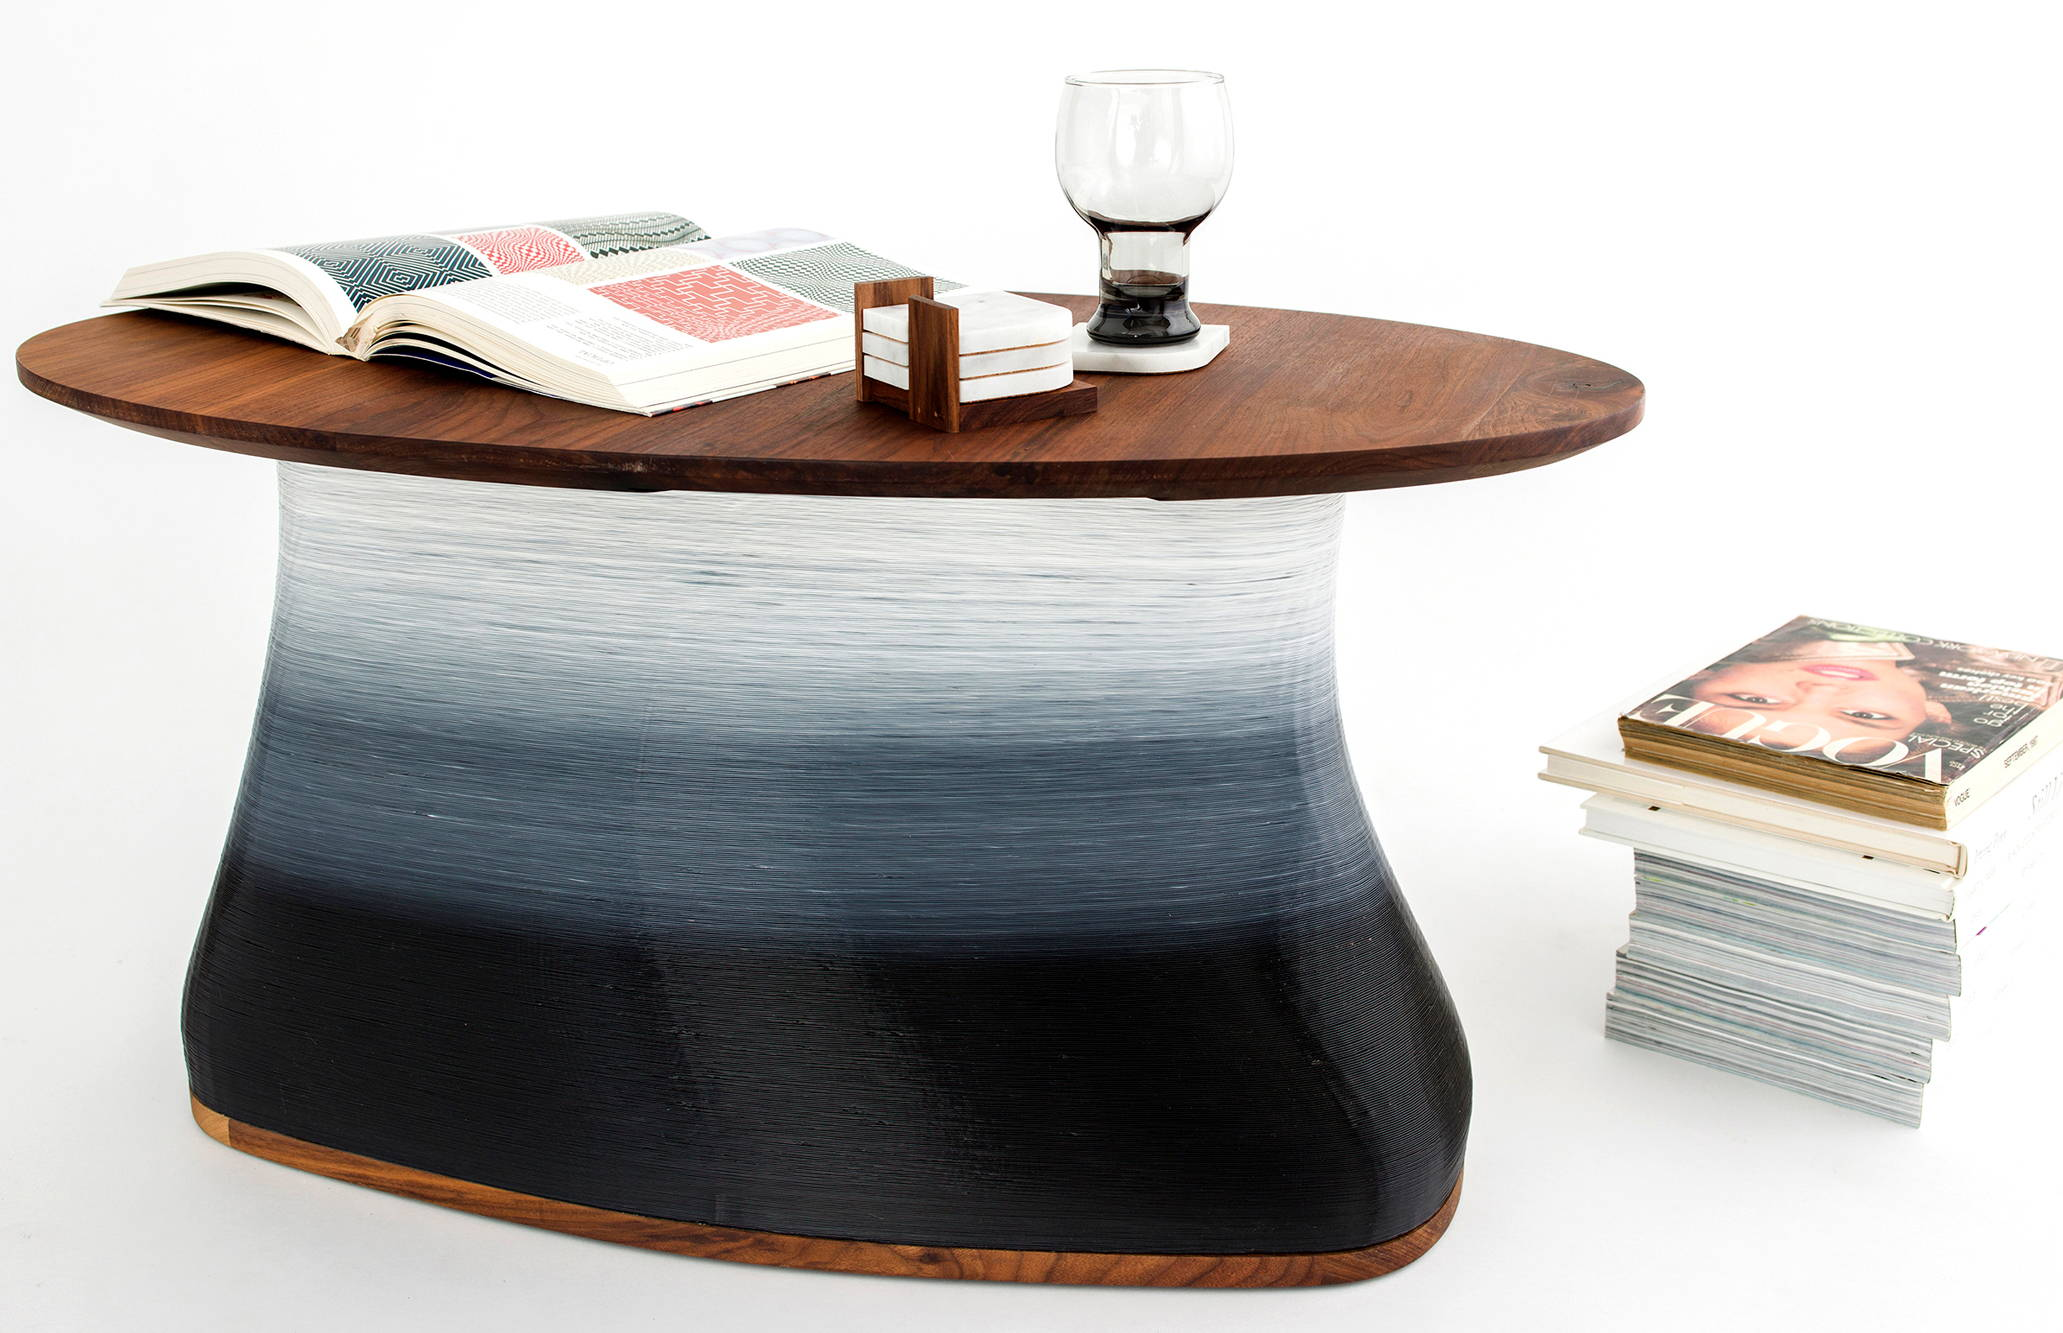 Oval shaped coffee table made of black ombre plant resin base and hardwood top with open book, coasters and glass on surface